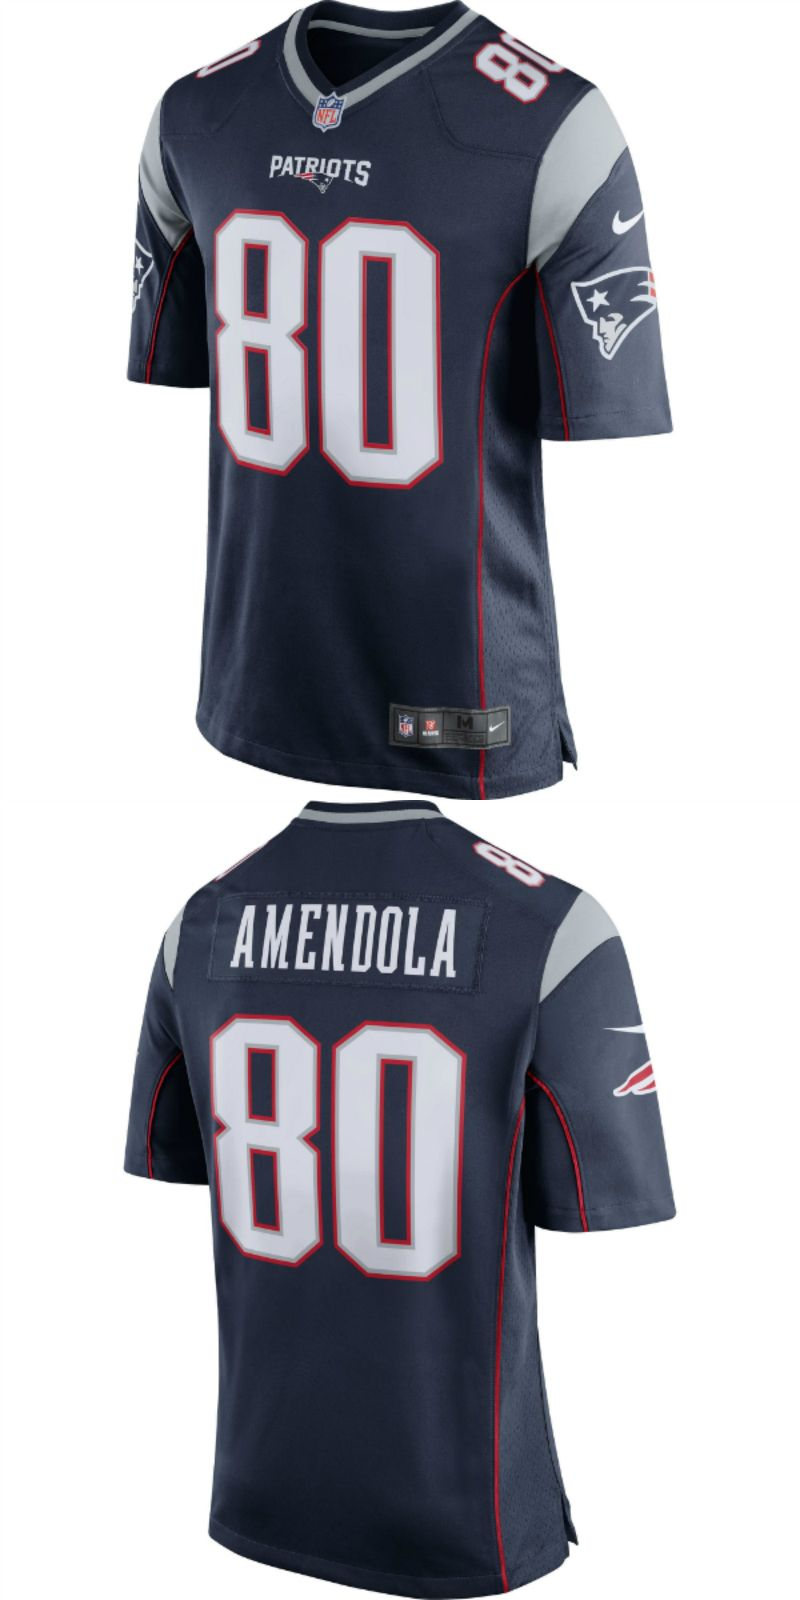 premium selection 6aad0 6c058 UP TO 70% OFF. Danny Amendola New England Patriots Nike Game ...